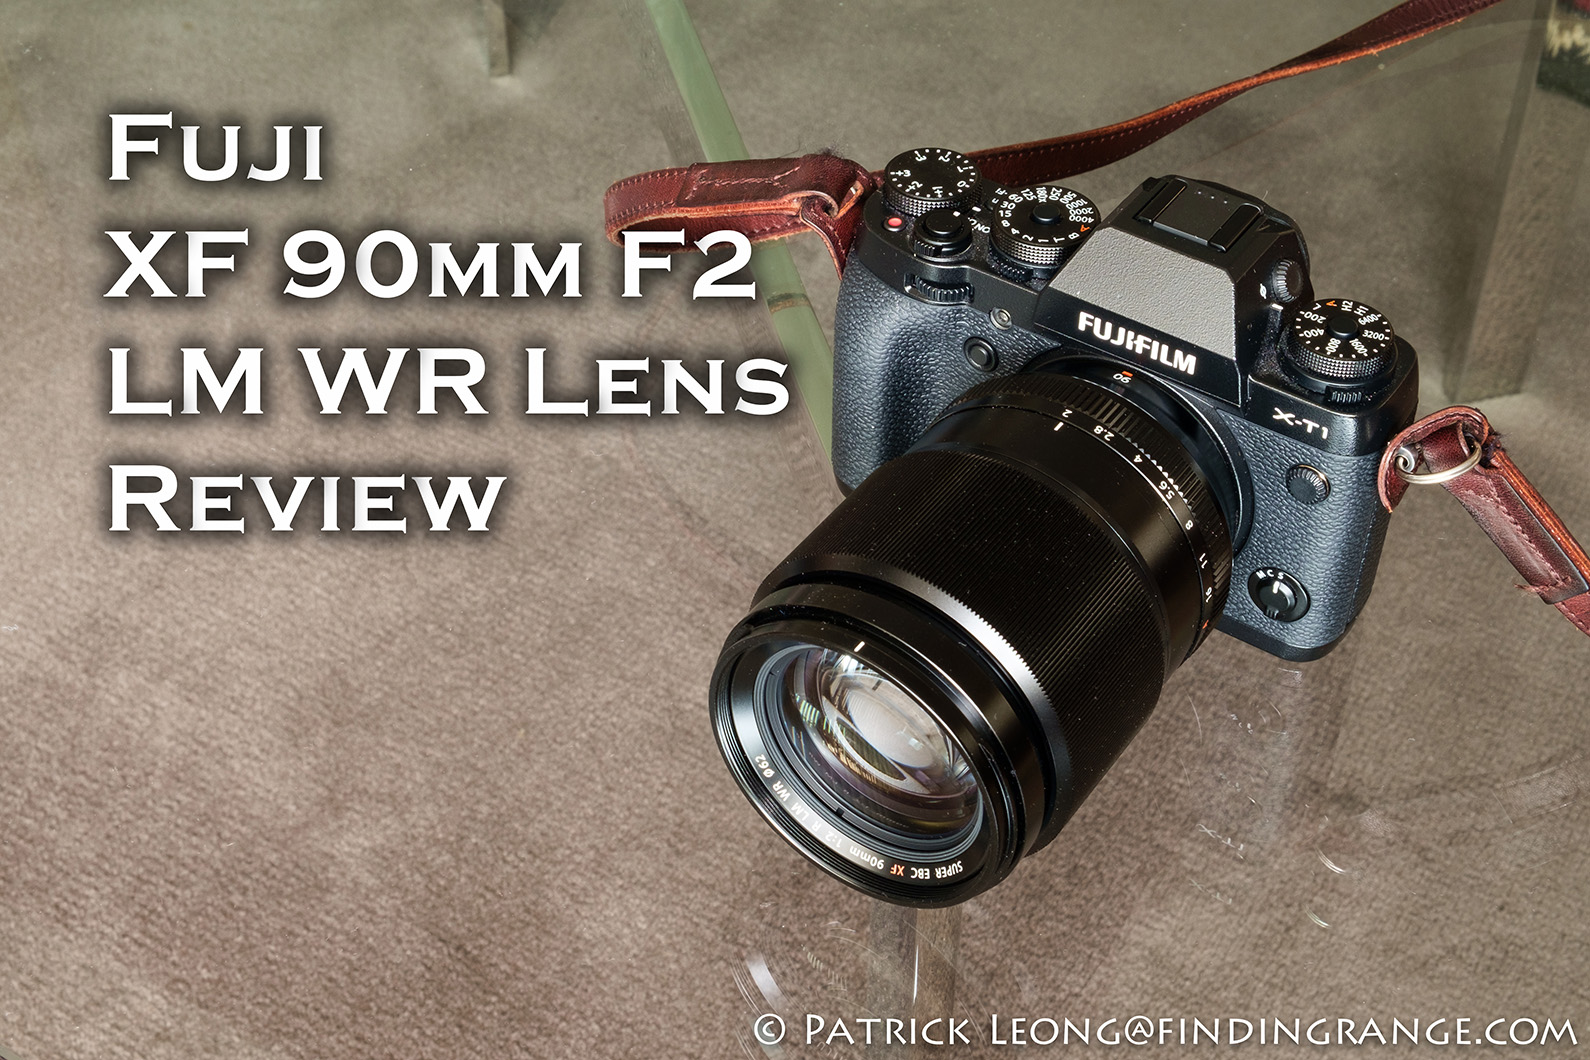 Fuji XF 90mm F2 LM WR Lens Review